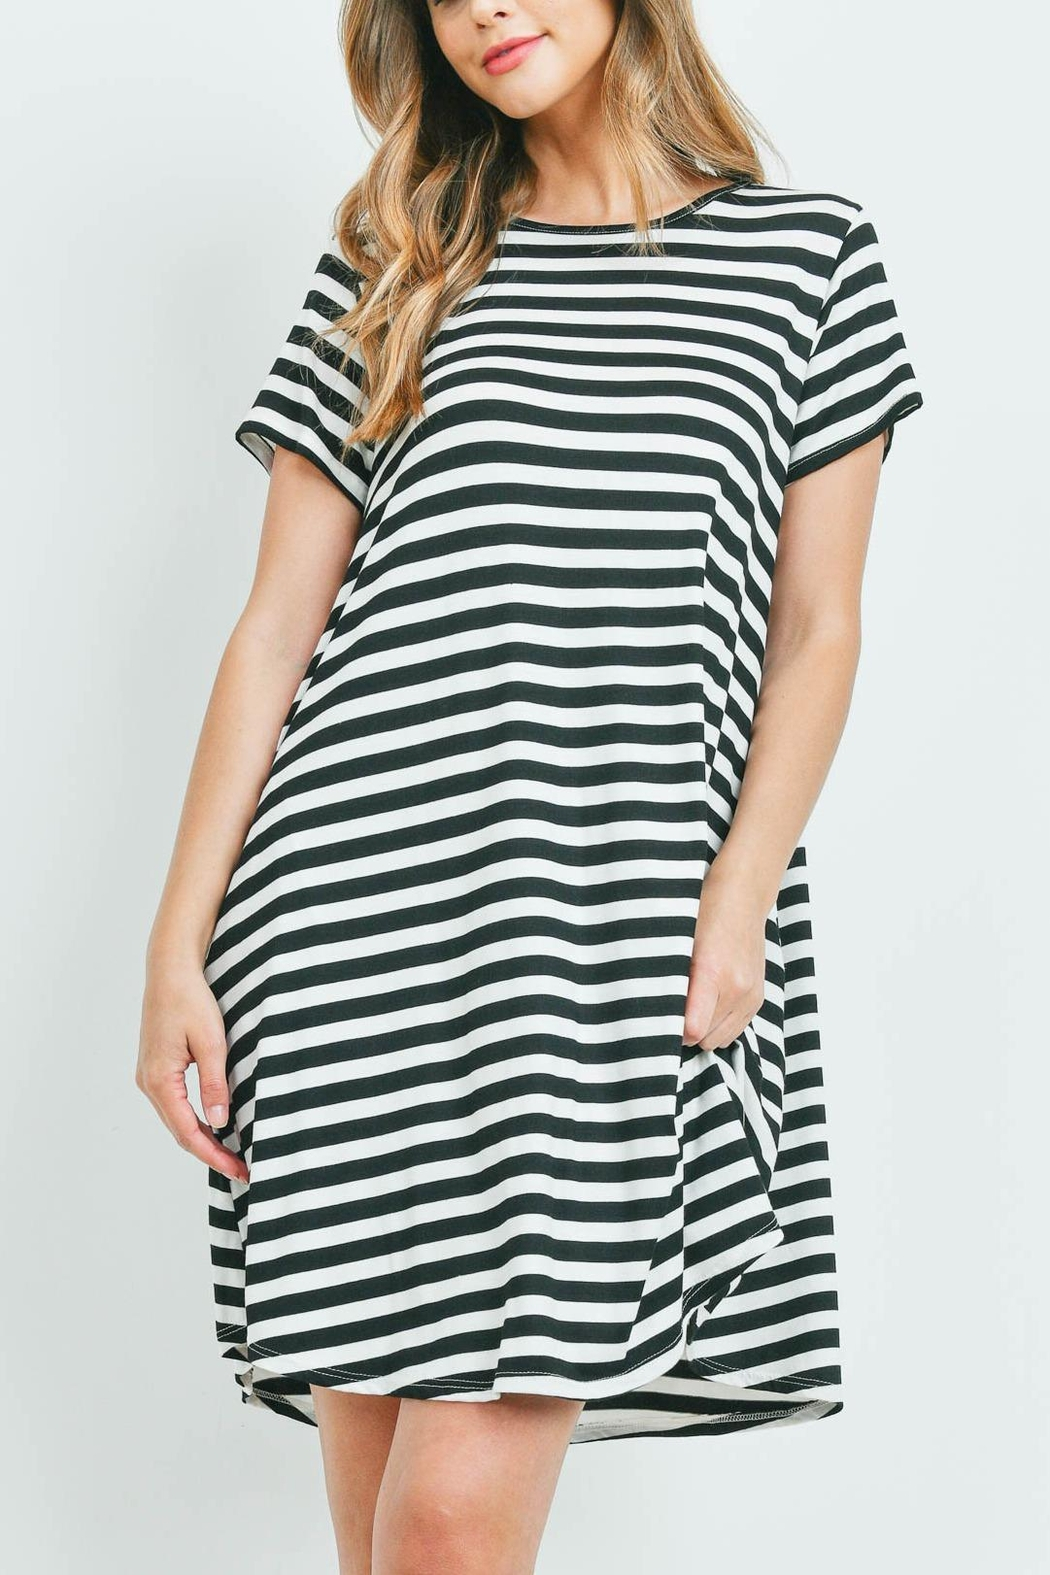 Riah Fashion Short-Sleeves-Round-Neck-Stripes-Dress - Front Cropped Image